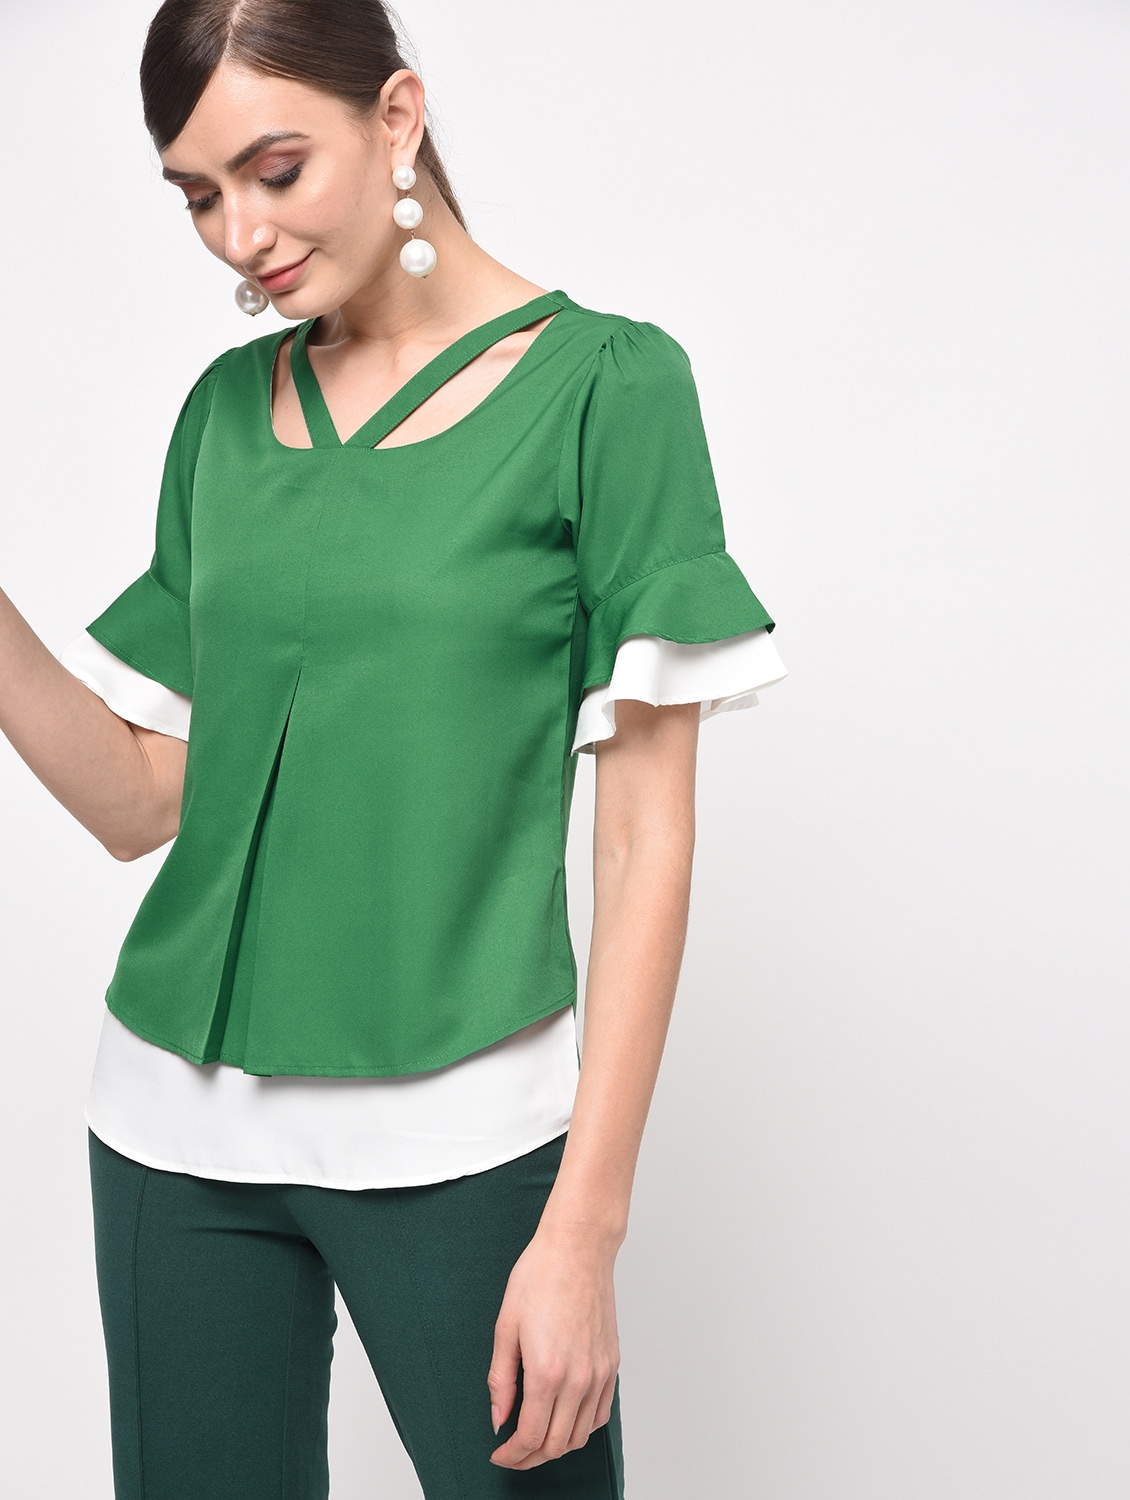 ba1872369f4d92 Buy Pleat Detail Layered Top for Women from Xquisite for ₹587 at 55 ...